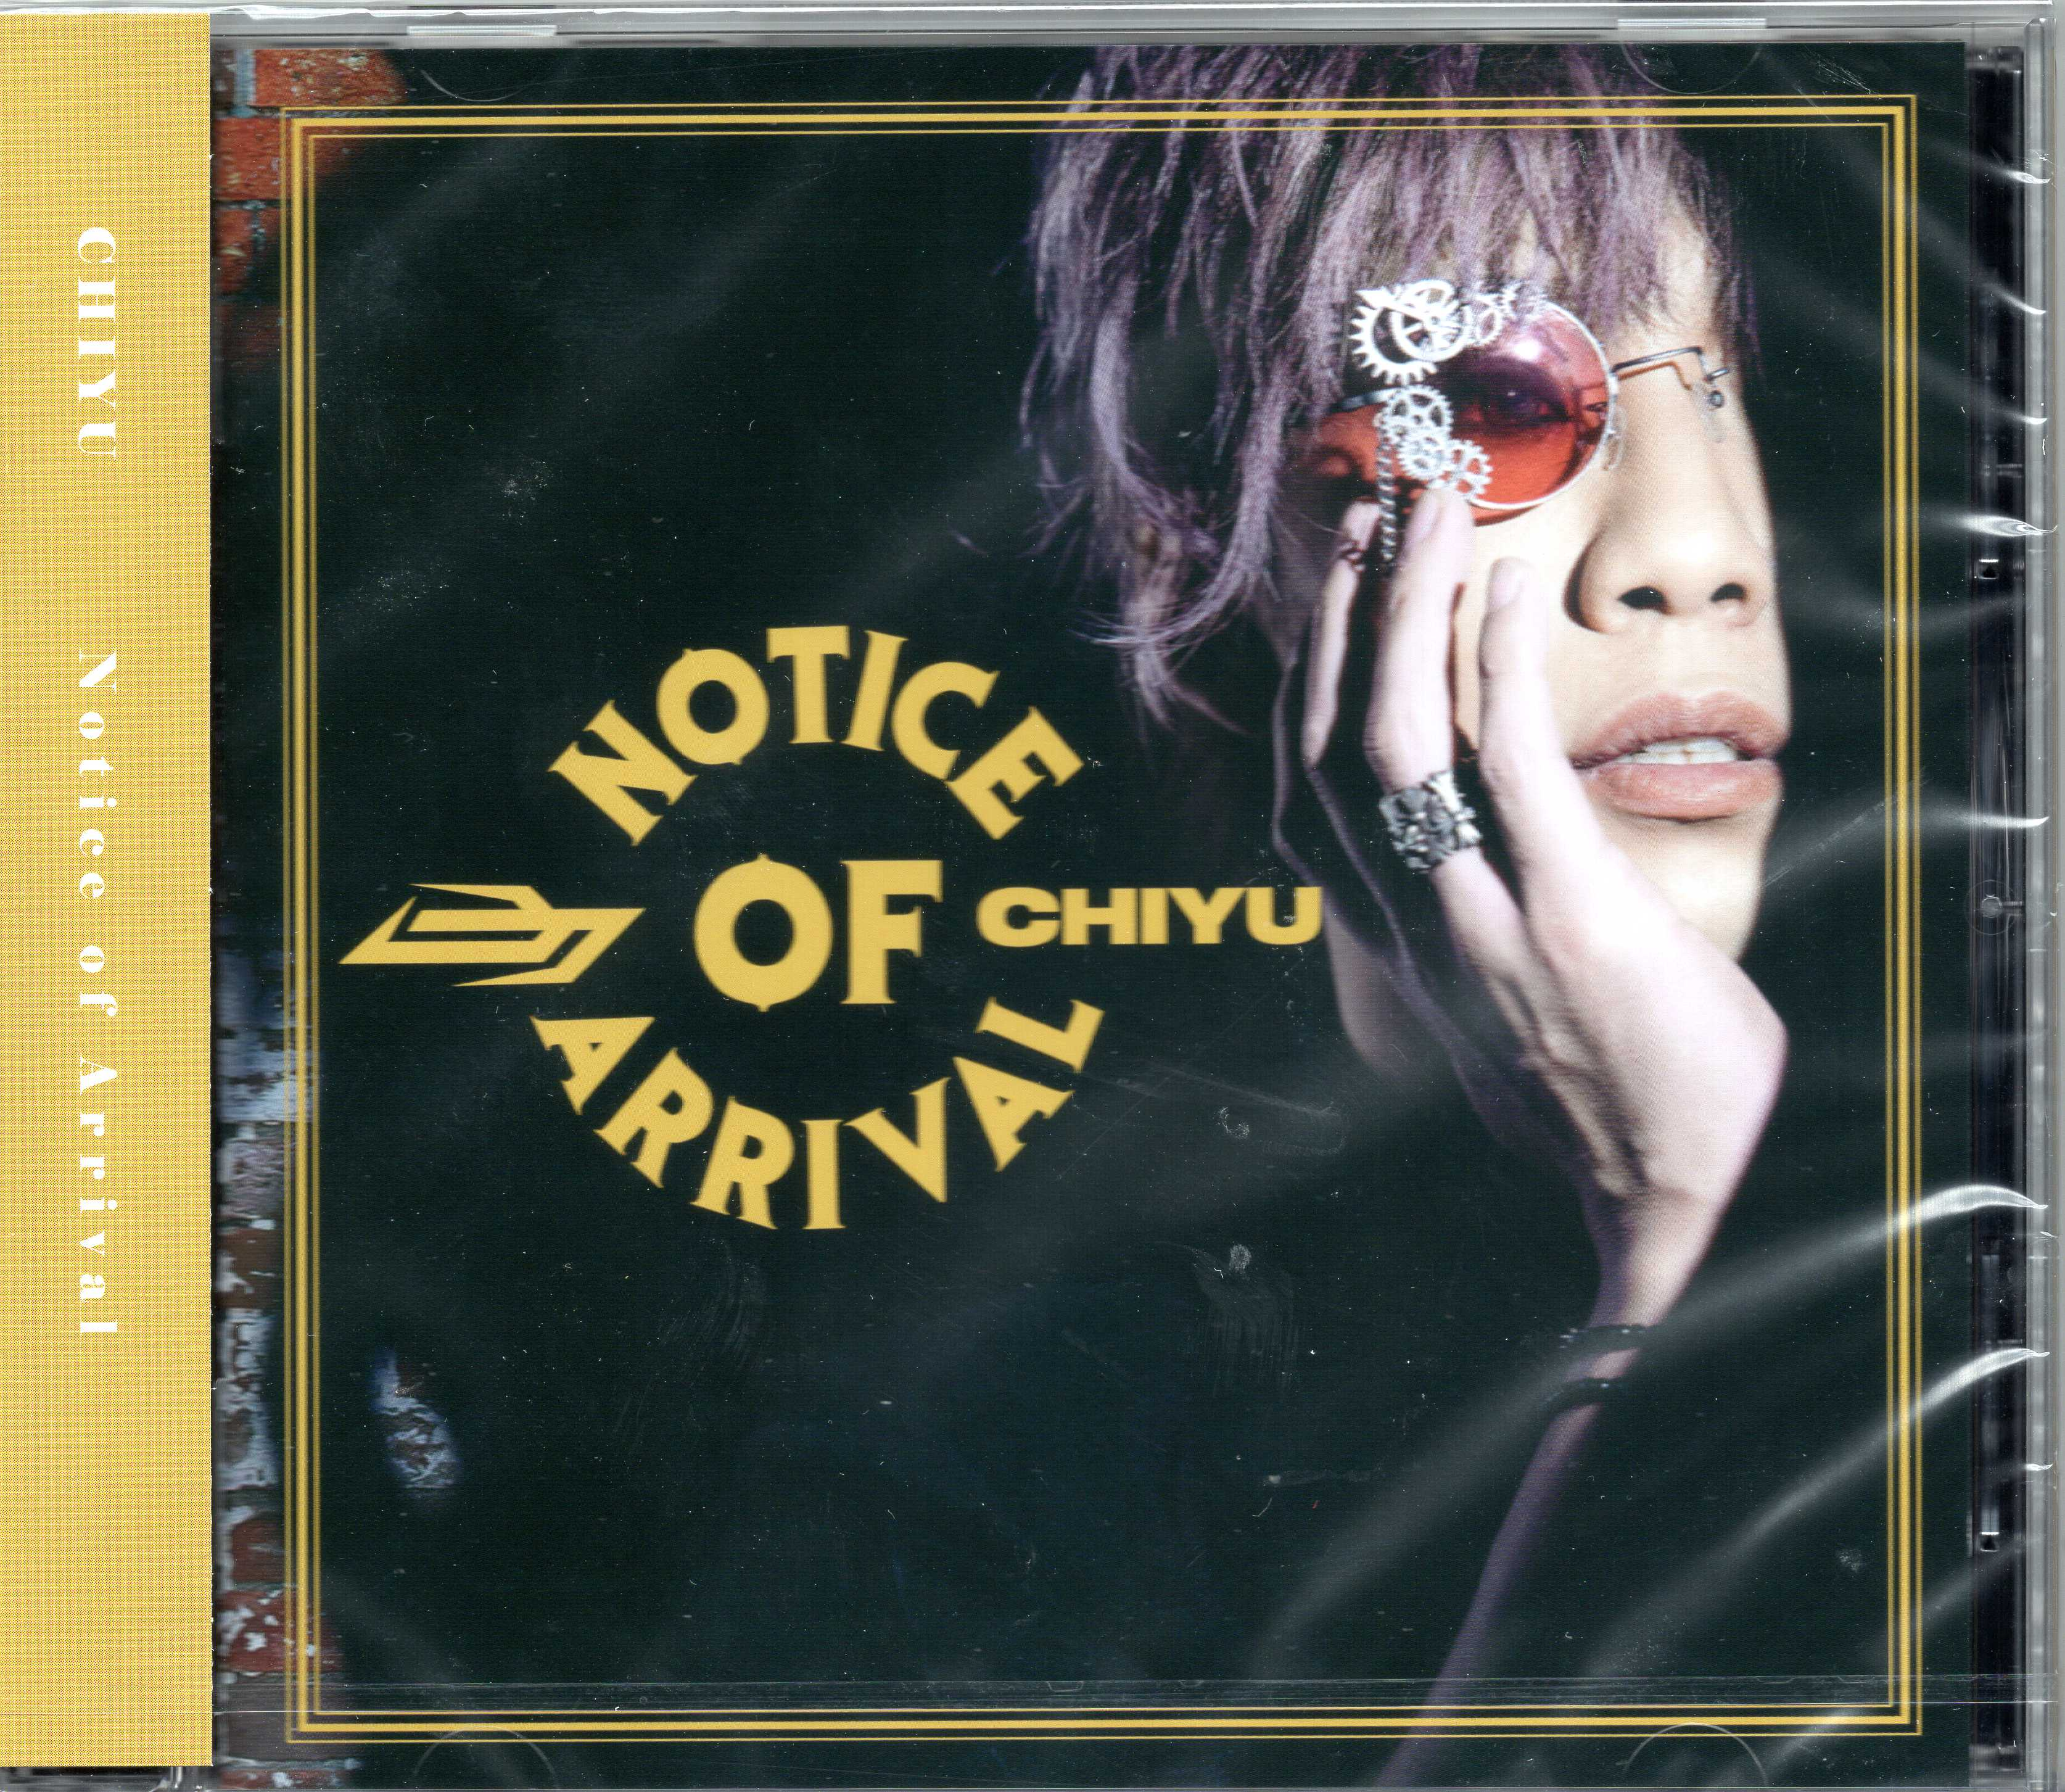 Chiyu の CD Notice of Arrival